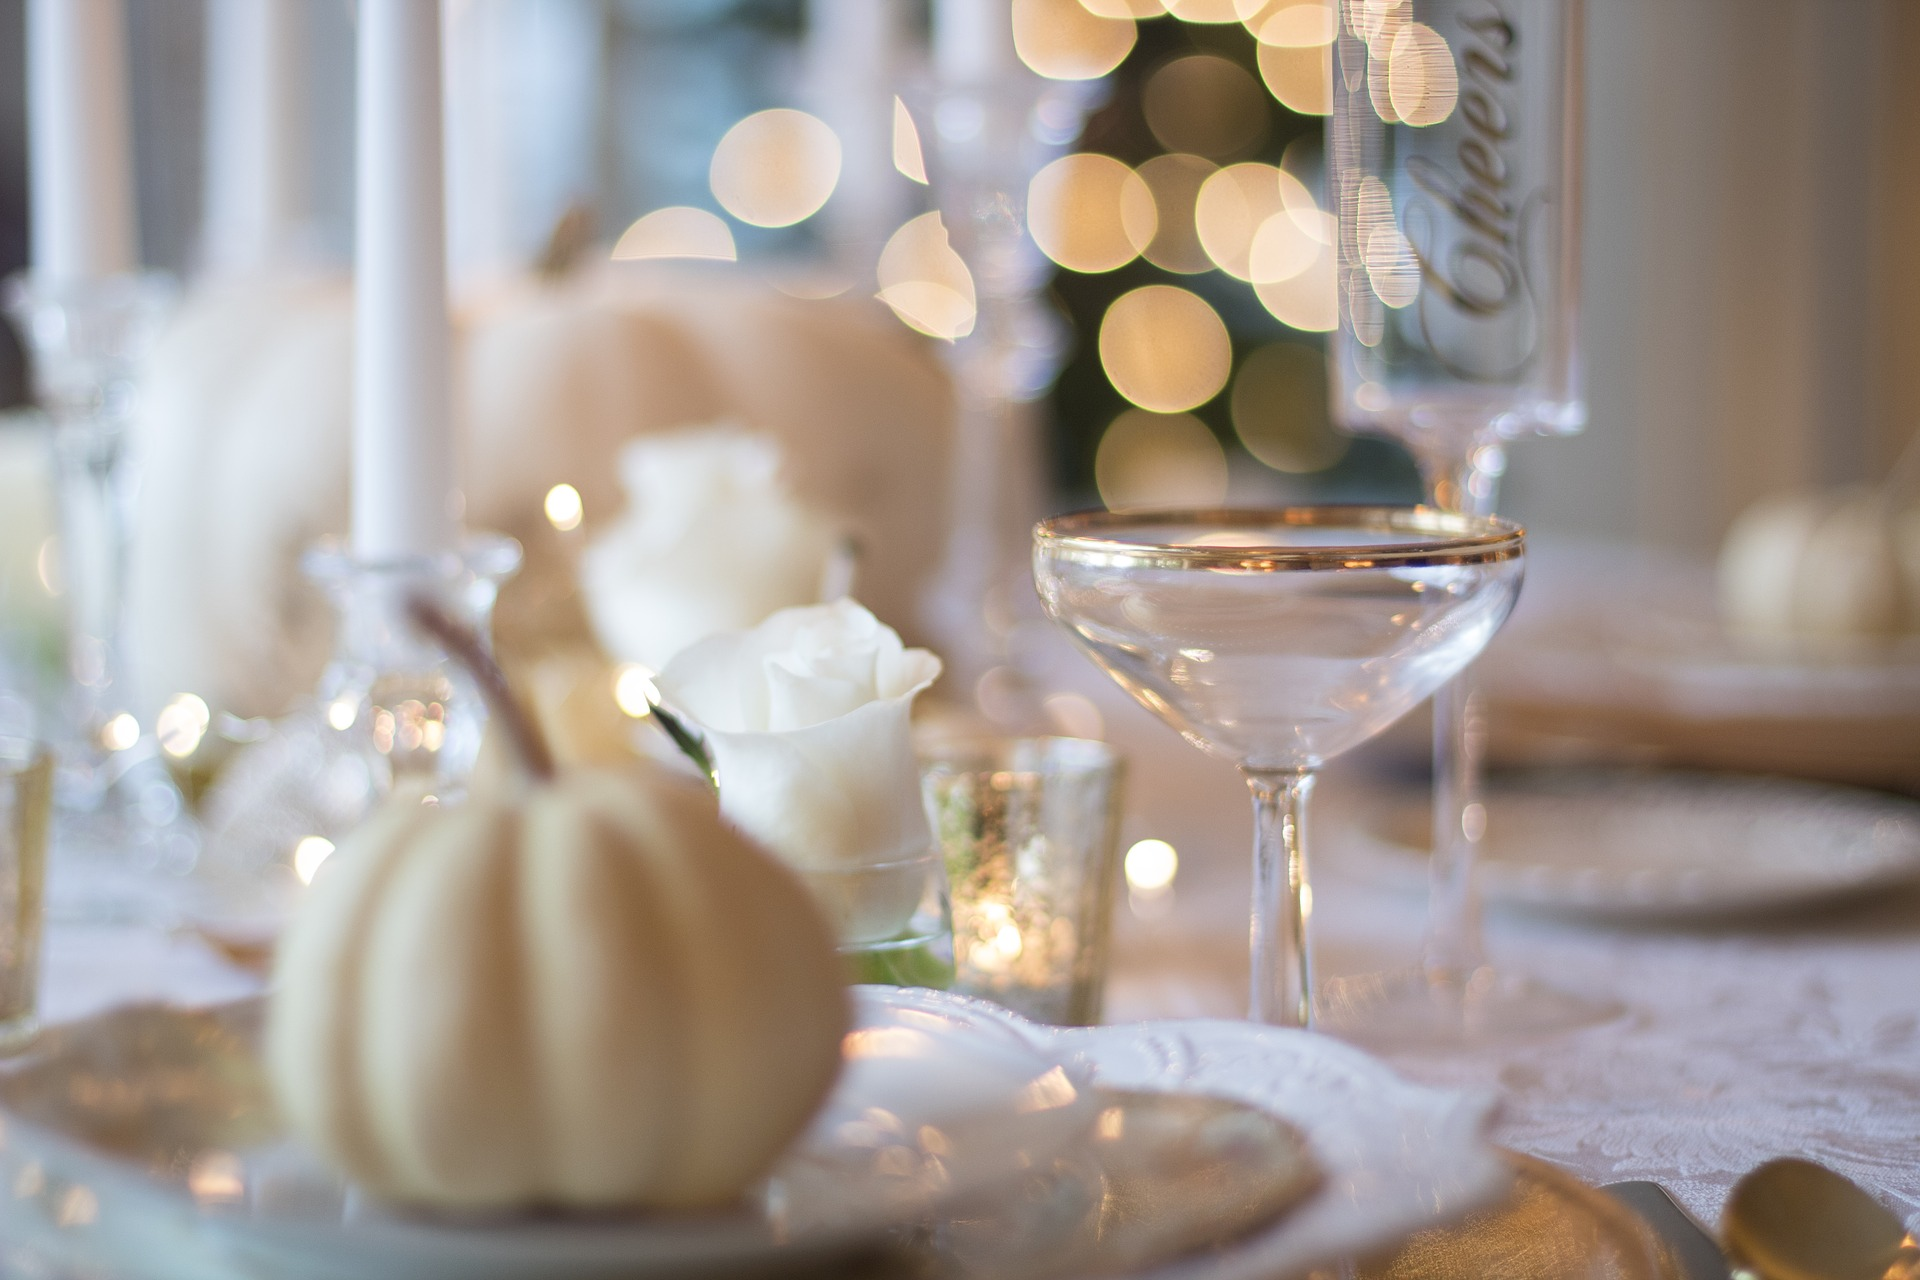 holiday-table-1926946_1920-2